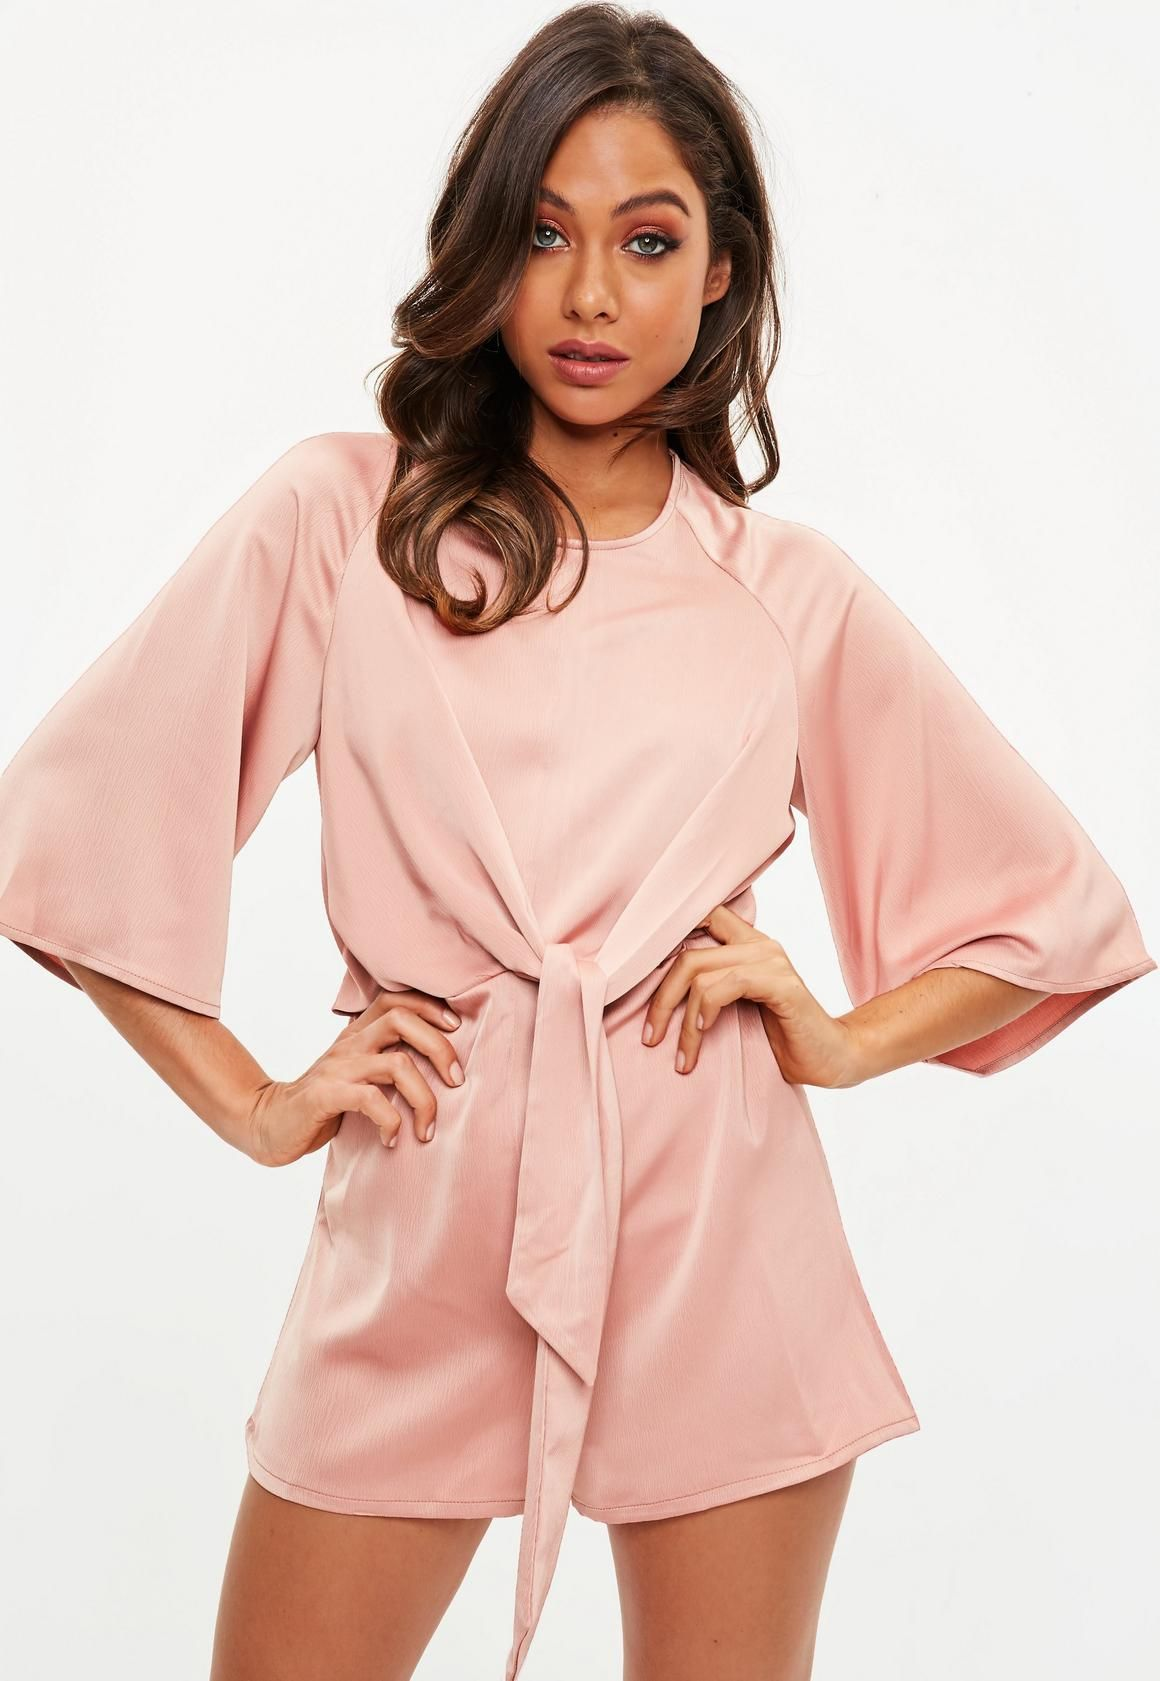 b5d6c8d3473 Missguided - Pink Tie Front Kimono Sleeve Romper